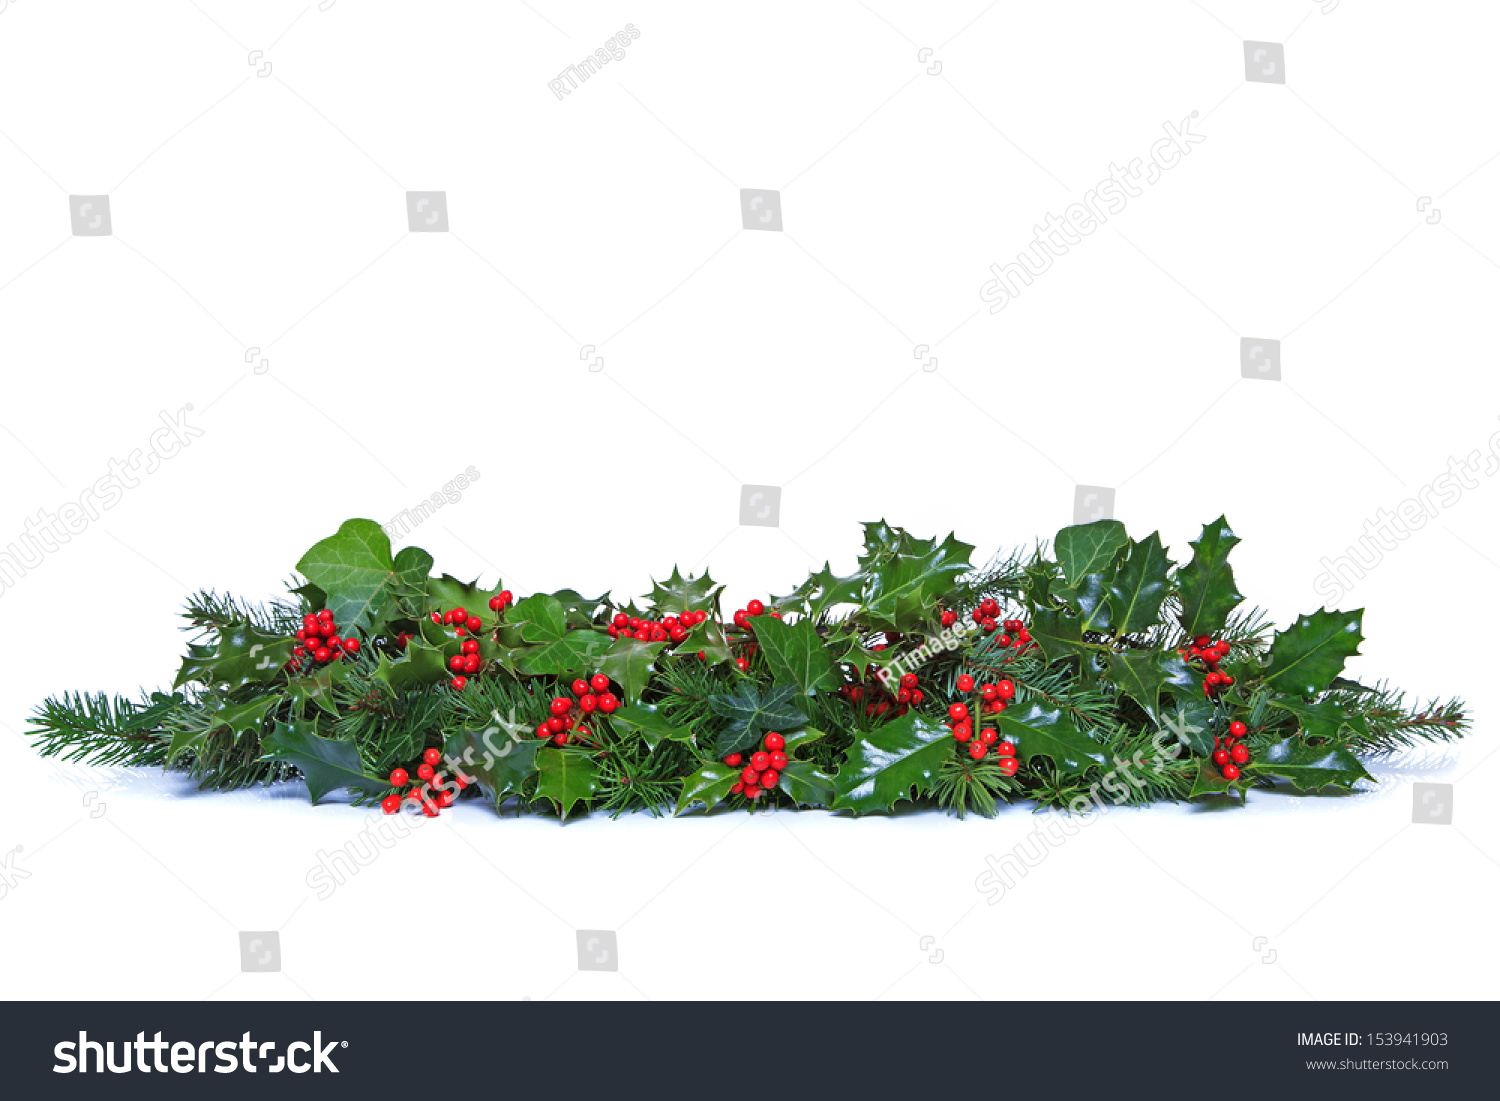 Why is holly a traditional christmas decoration - A Traditional Christmas Garland Made From Fresh Holly With Red Berries Green Ivy Leaves And